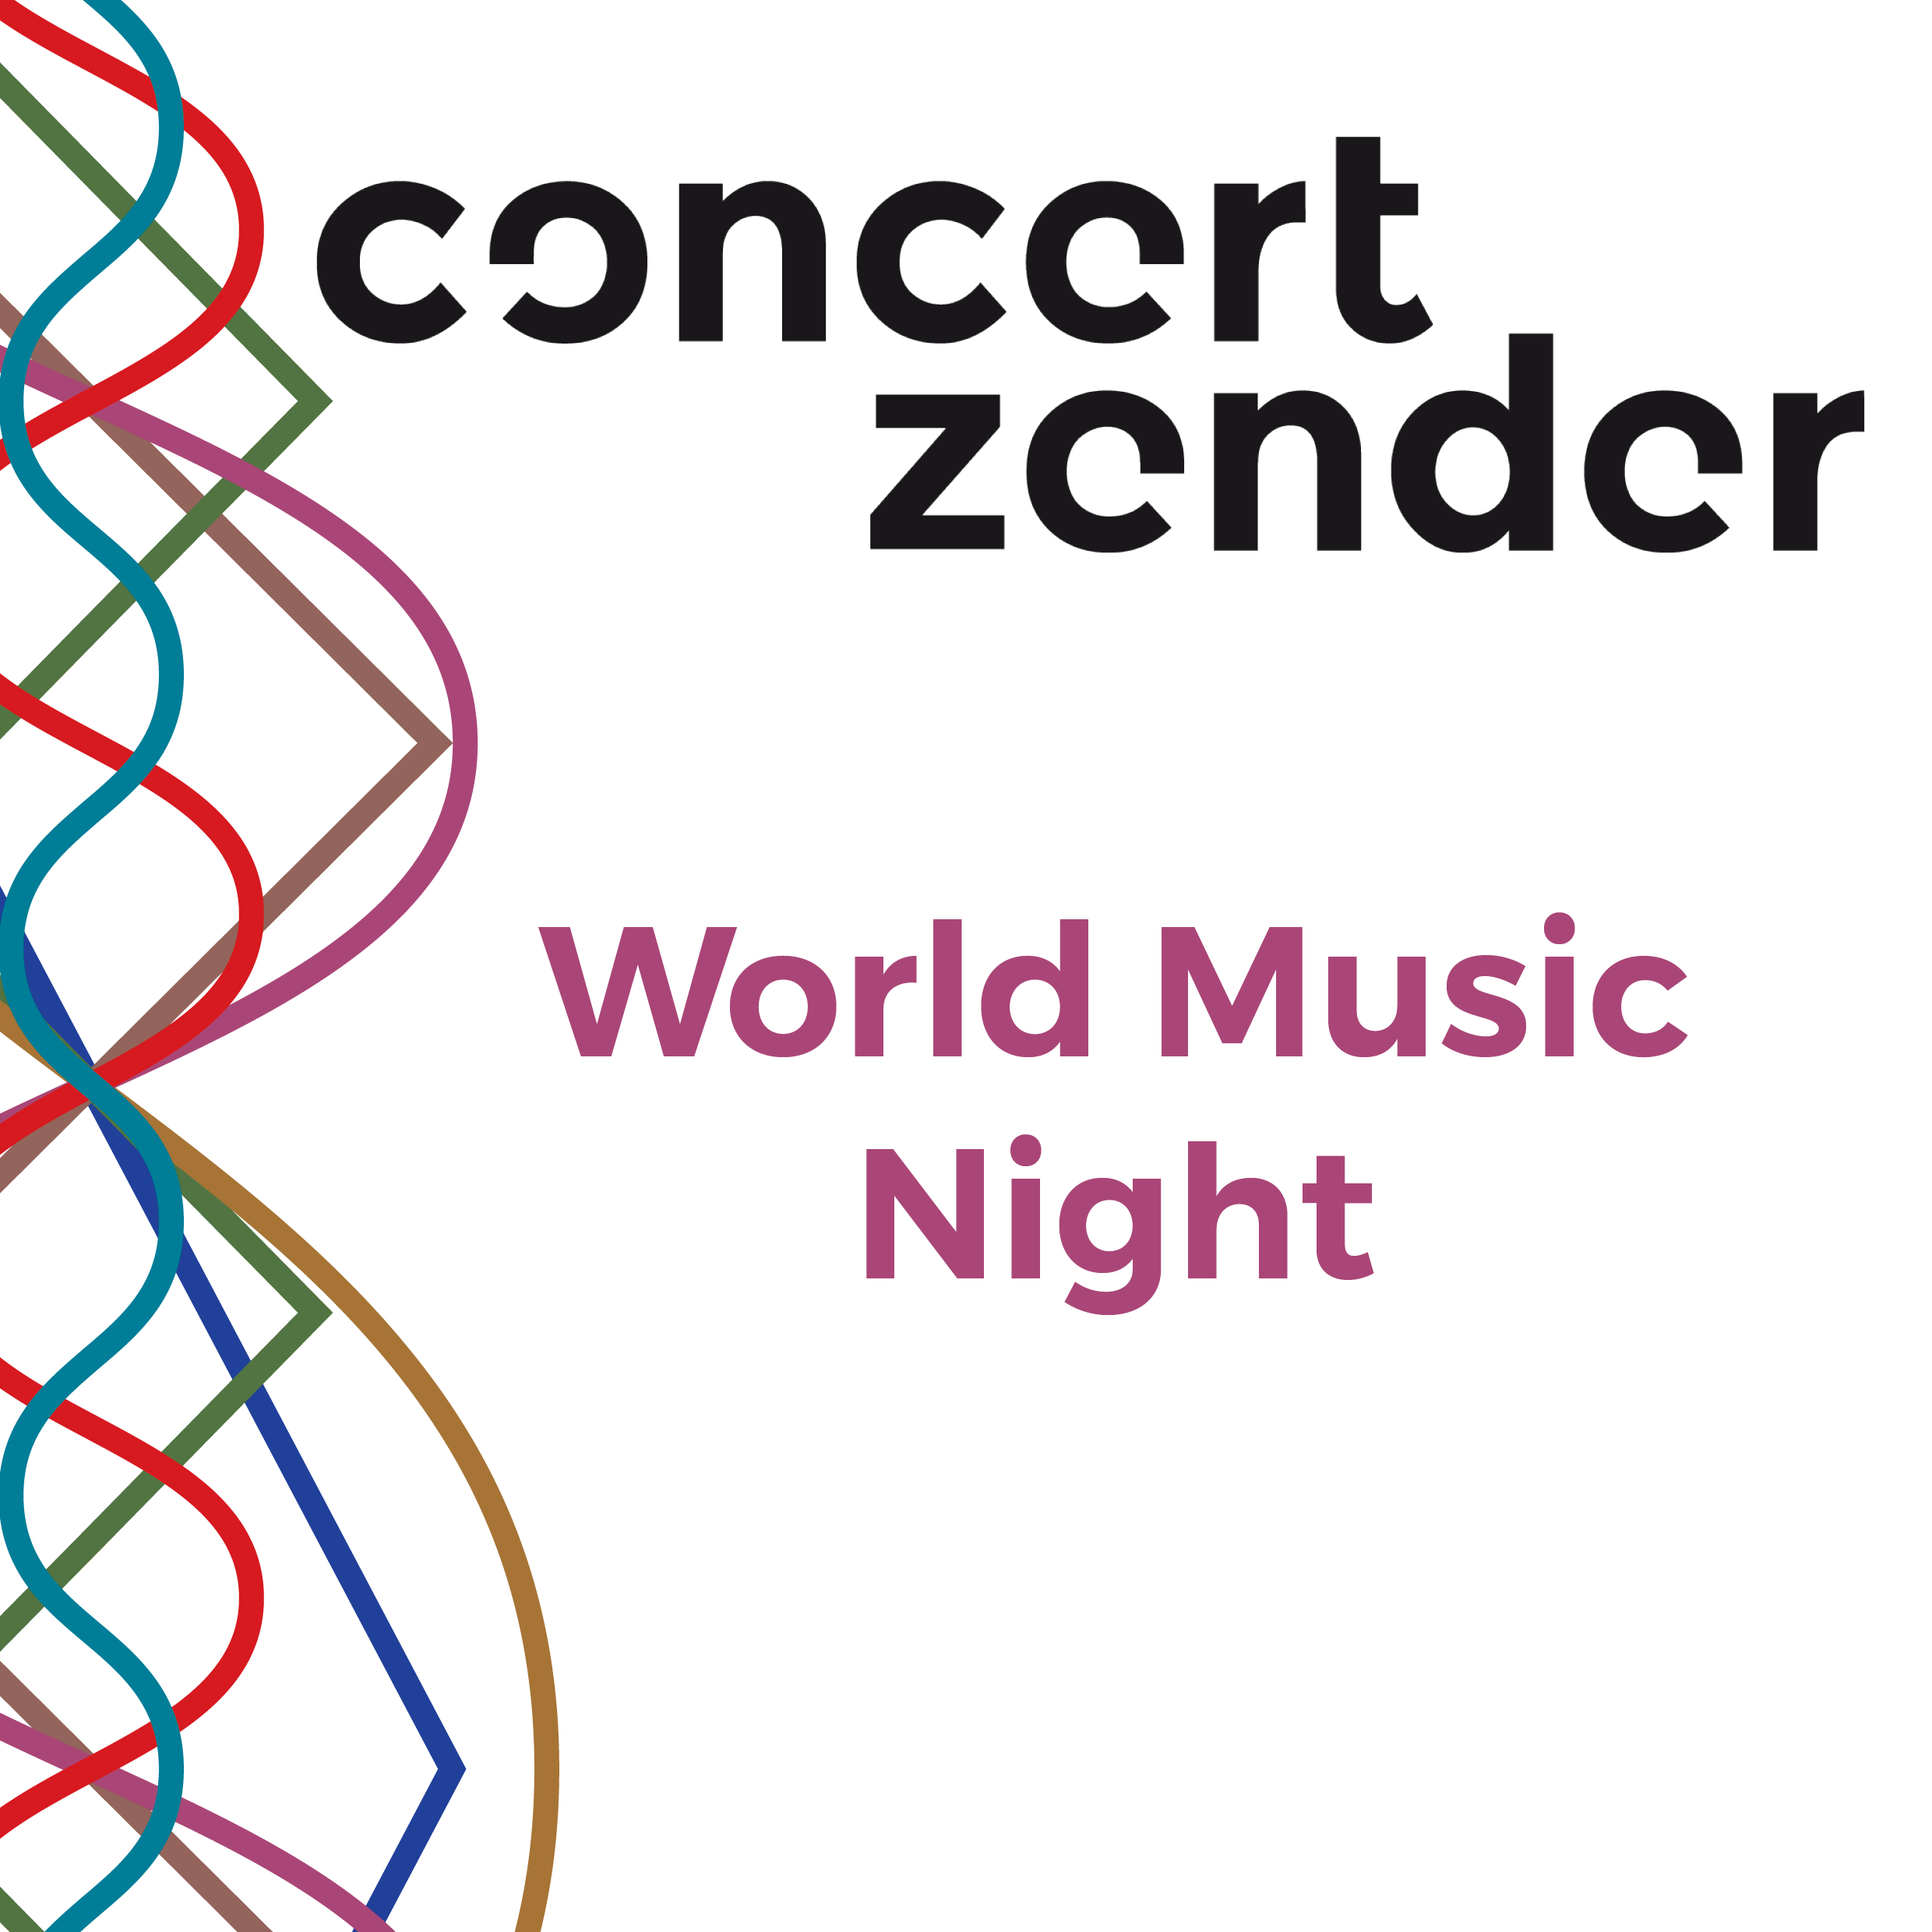 Concertzender presents the World Music Night preview